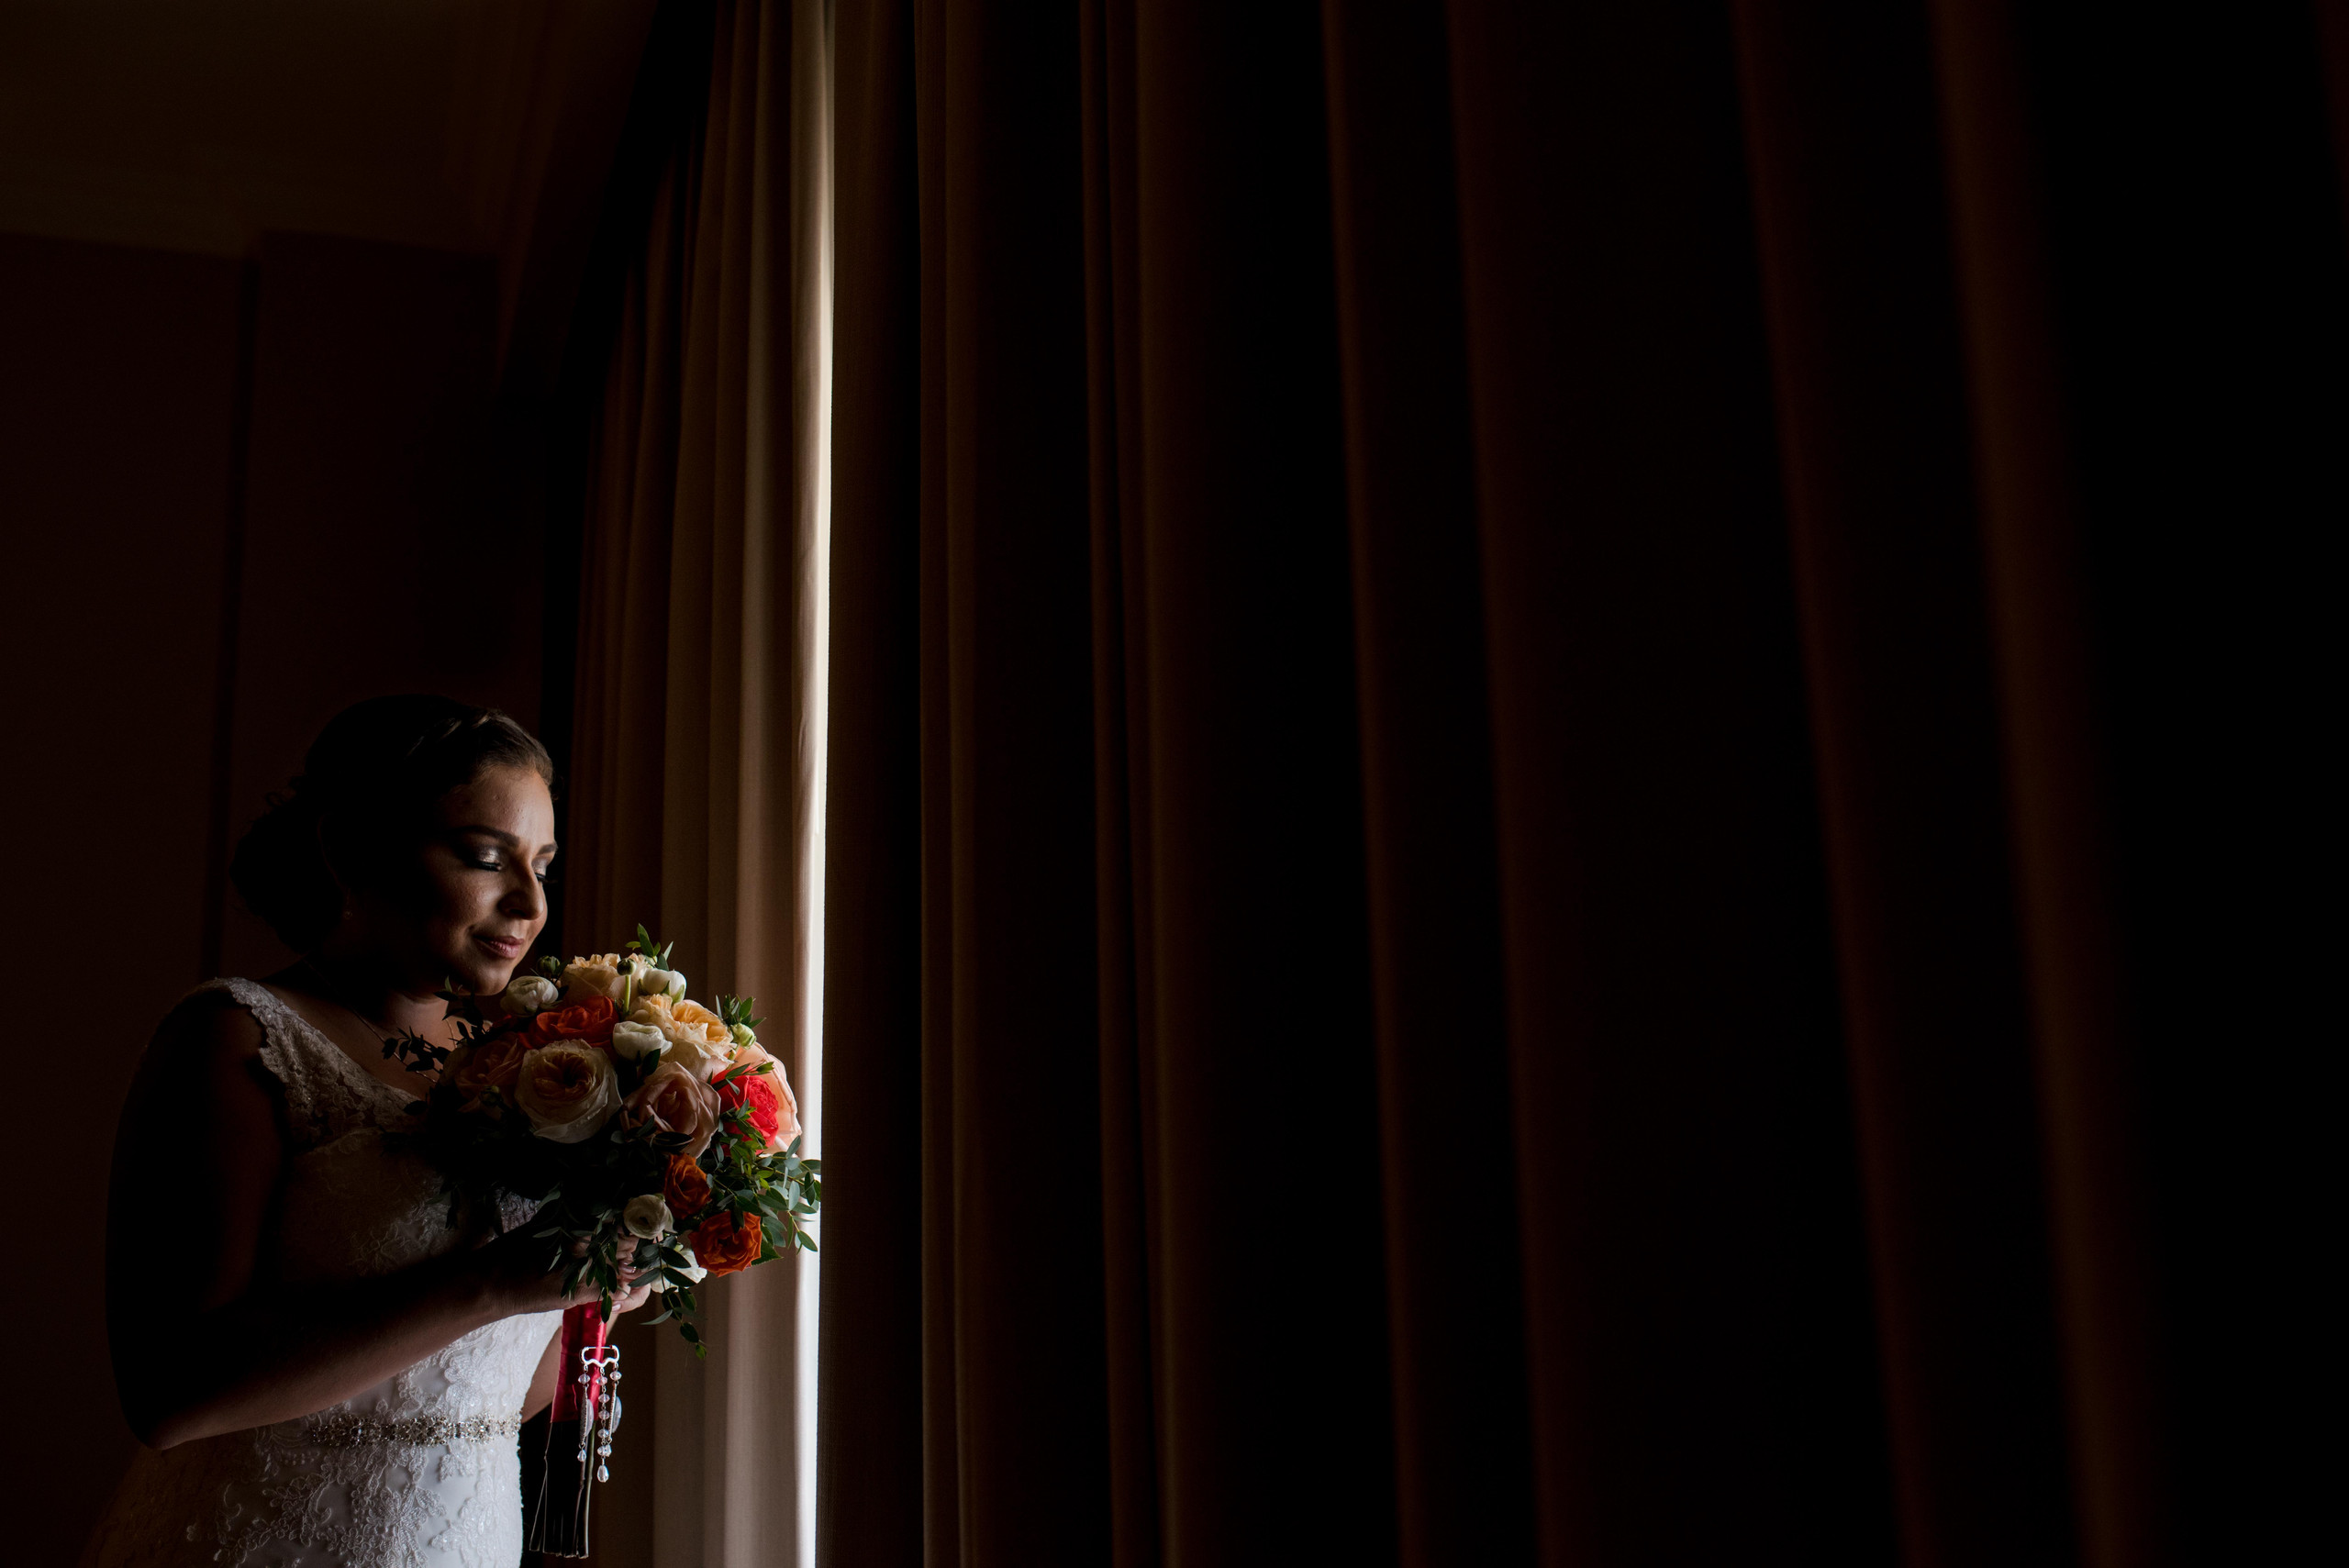 bride+bouquet+room